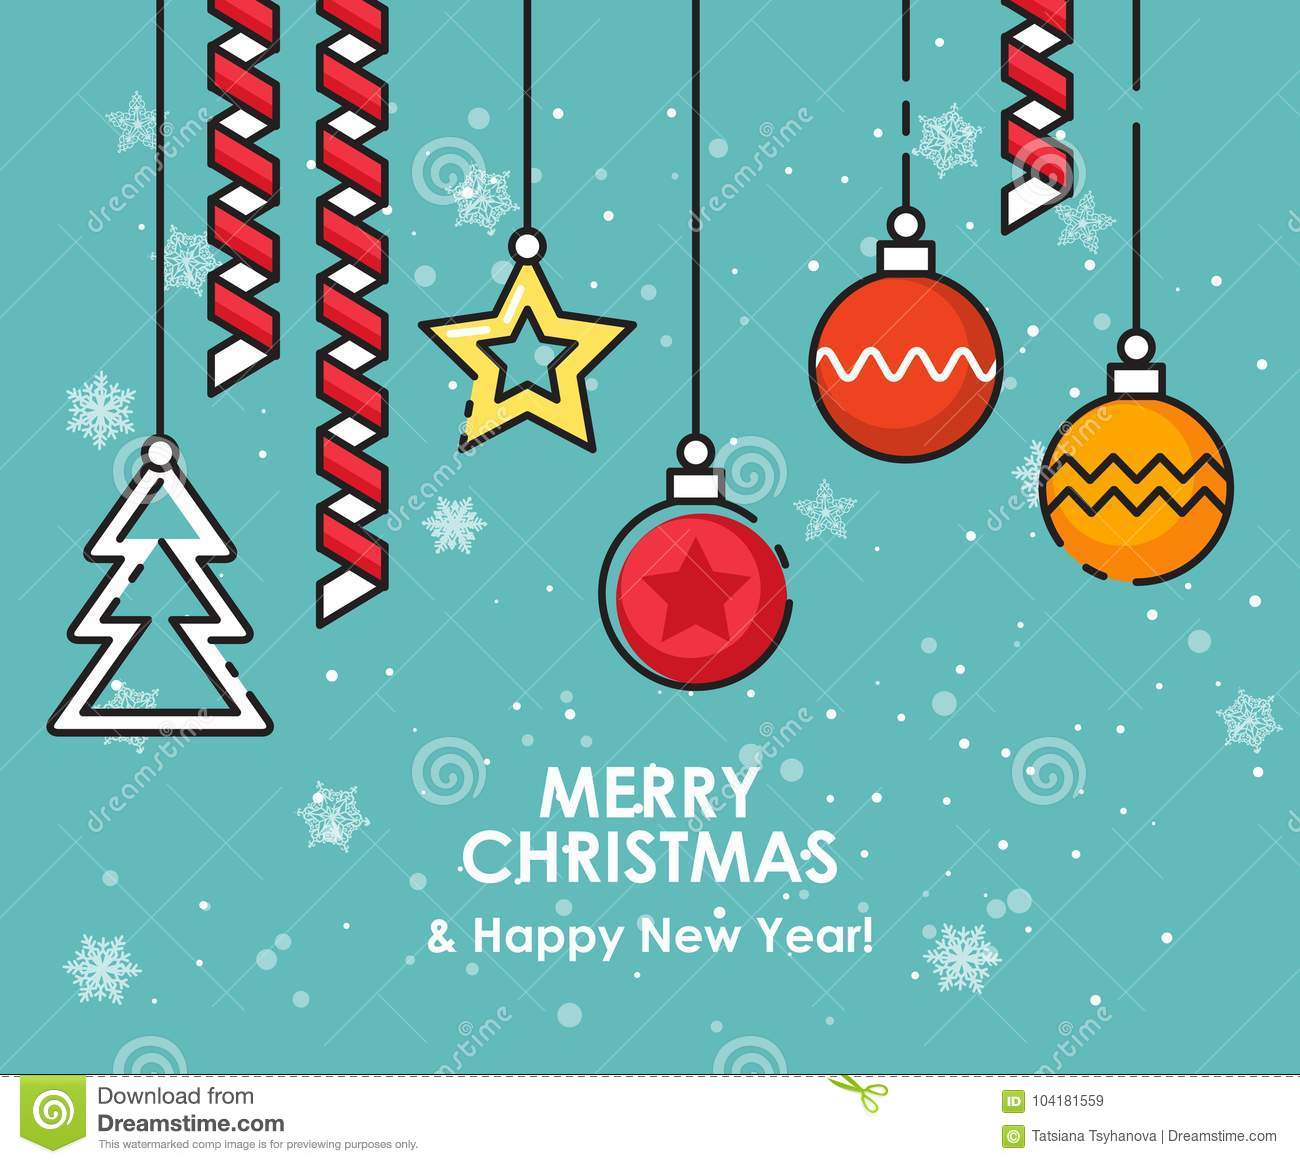 merry christmas greeting card happy new year wishes poster in flat line modern style modern christmas background christmas ornaments and decorations